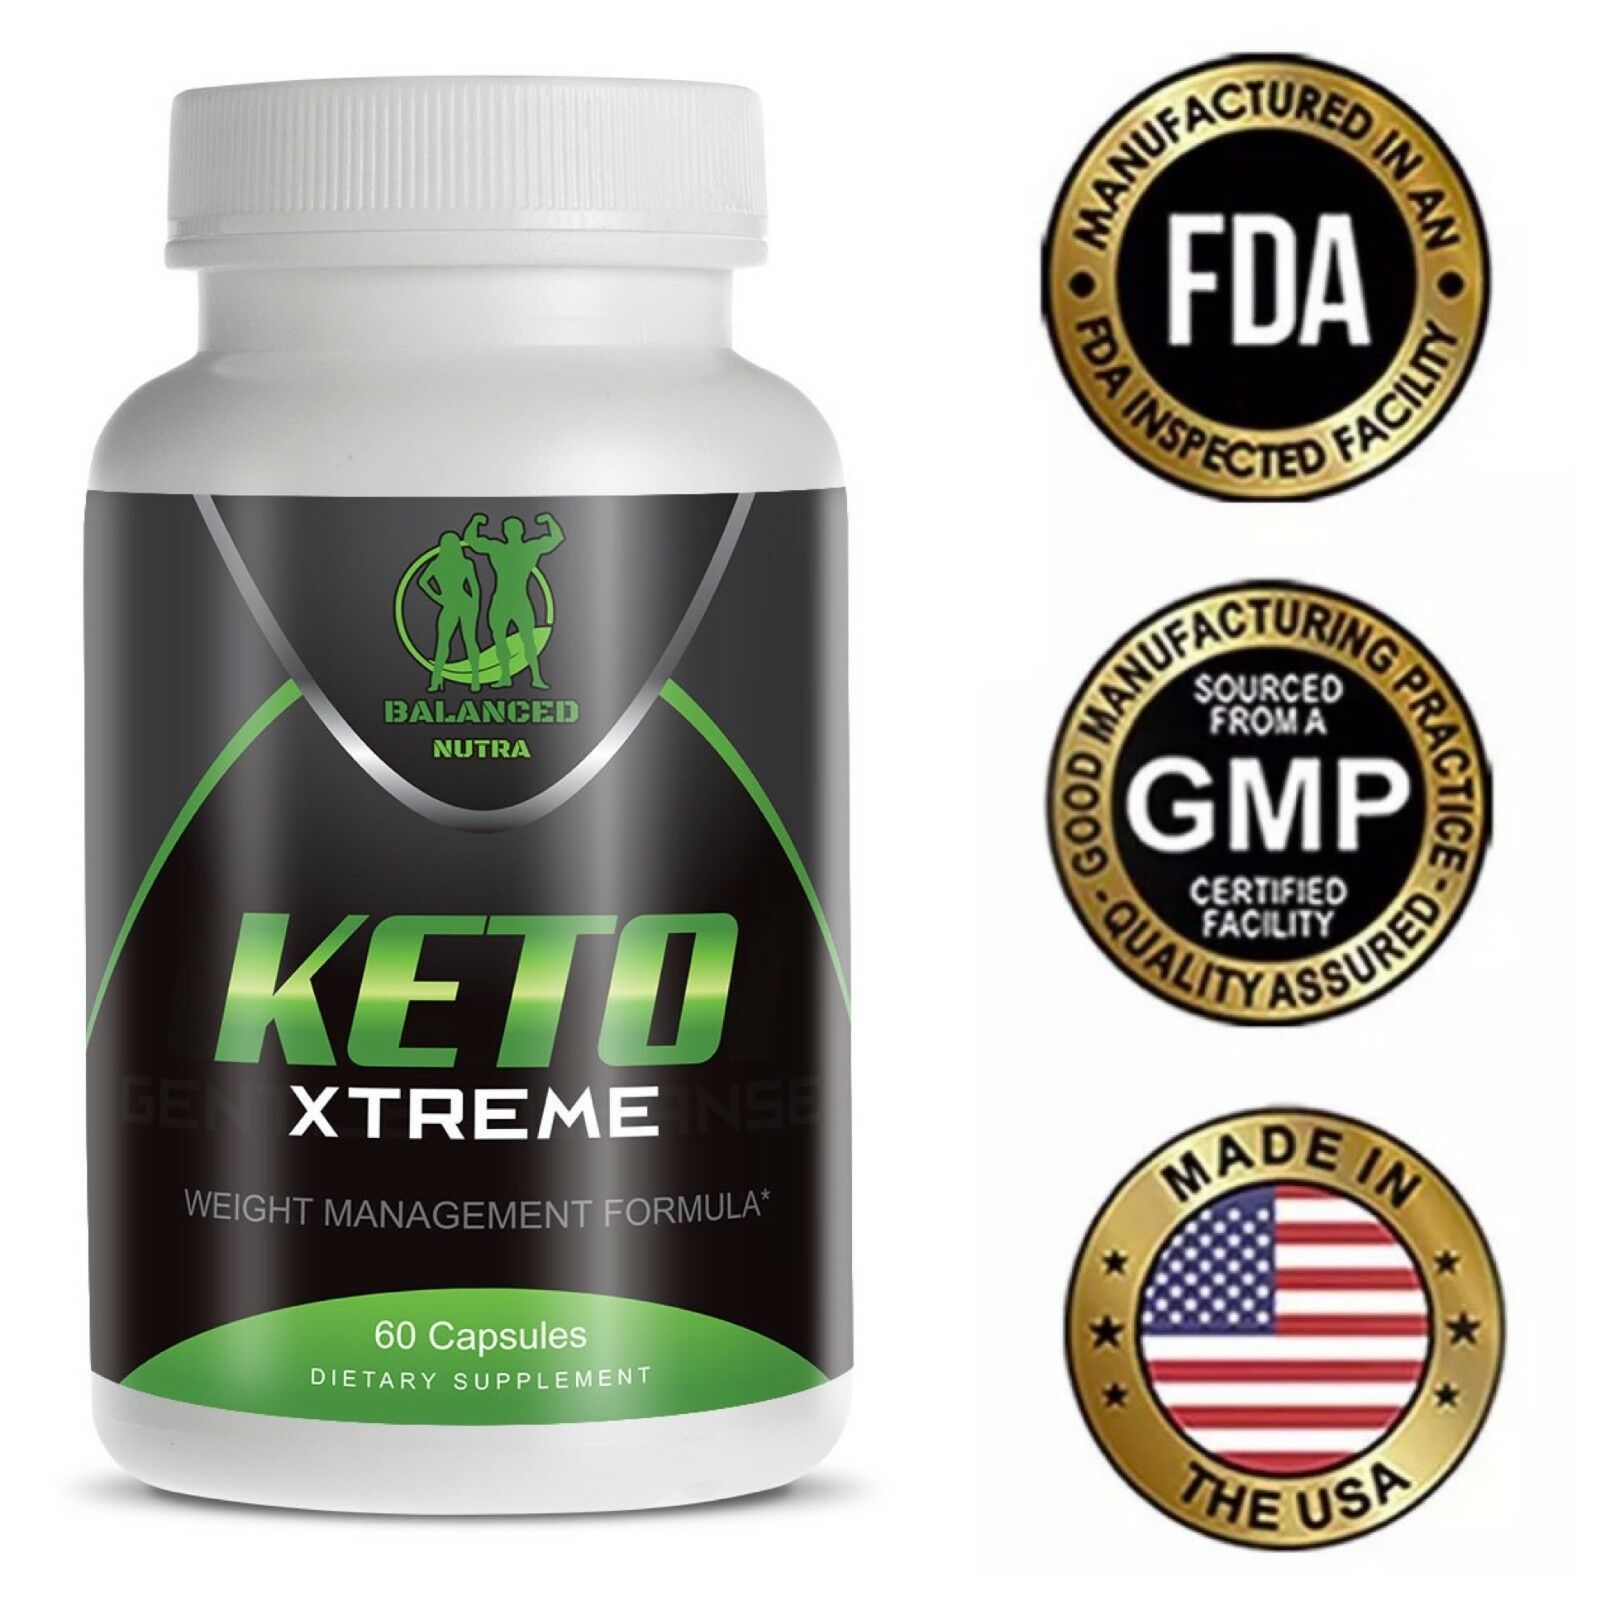 Keto Diet Pills Keto xtreme Best Weight Loss Diet Pill Carb Blocker 30 Day Pack  s l1600